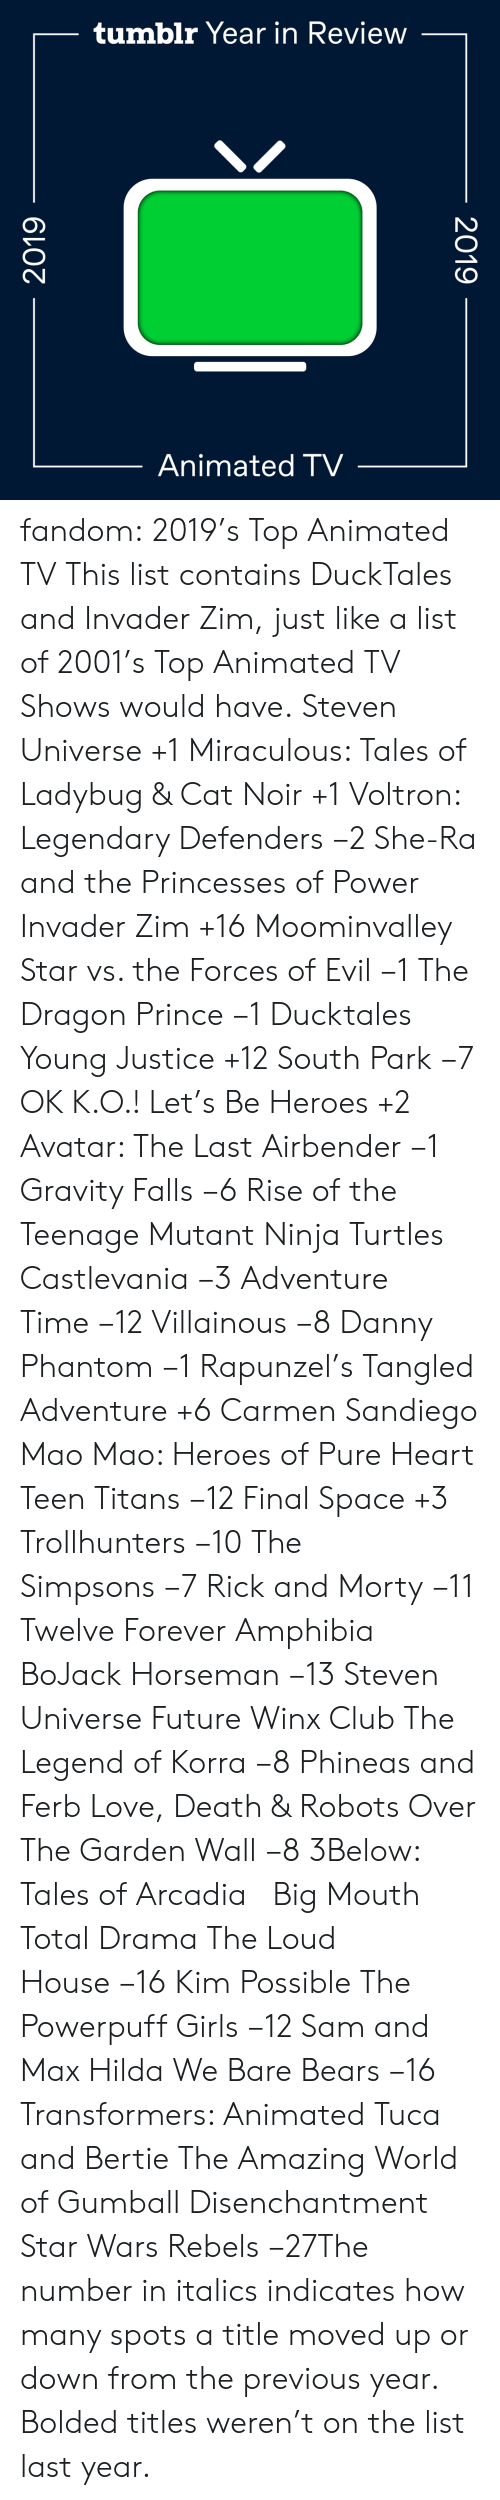 Steven Universe: tumblr Year in Review  Animated TV  2019  2019 fandom:  2019's Top Animated TV  This list contains DuckTales and Invader Zim, just like a list of 2001's Top Animated TV Shows would have.  Steven Universe +1  Miraculous: Tales of Ladybug & Cat Noir +1  Voltron: Legendary Defenders −2  She-Ra and the Princesses of Power   Invader Zim +16  Moominvalley  Star vs. the Forces of Evil −1  The Dragon Prince −1  Ducktales  Young Justice +12  South Park −7  OK K.O.! Let's Be Heroes +2  Avatar: The Last Airbender −1  Gravity Falls −6  Rise of the Teenage Mutant Ninja Turtles  Castlevania −3  Adventure Time −12  Villainous −8  Danny Phantom −1  Rapunzel's Tangled Adventure +6  Carmen Sandiego  Mao Mao: Heroes of Pure Heart  Teen Titans −12  Final Space +3  Trollhunters −10  The Simpsons −7  Rick and Morty −11  Twelve Forever  Amphibia  BoJack Horseman −13  Steven Universe Future  Winx Club  The Legend of Korra −8  Phineas and Ferb  Love, Death & Robots  Over The Garden Wall −8  3Below: Tales of Arcadia    Big Mouth  Total Drama  The Loud House −16  Kim Possible  The Powerpuff Girls −12  Sam and Max  Hilda  We Bare Bears −16  Transformers: Animated  Tuca and Bertie  The Amazing World of Gumball  Disenchantment Star Wars Rebels −27The number in italics indicates how many spots a title moved up or down from the previous year. Bolded titles weren't on the list last year.